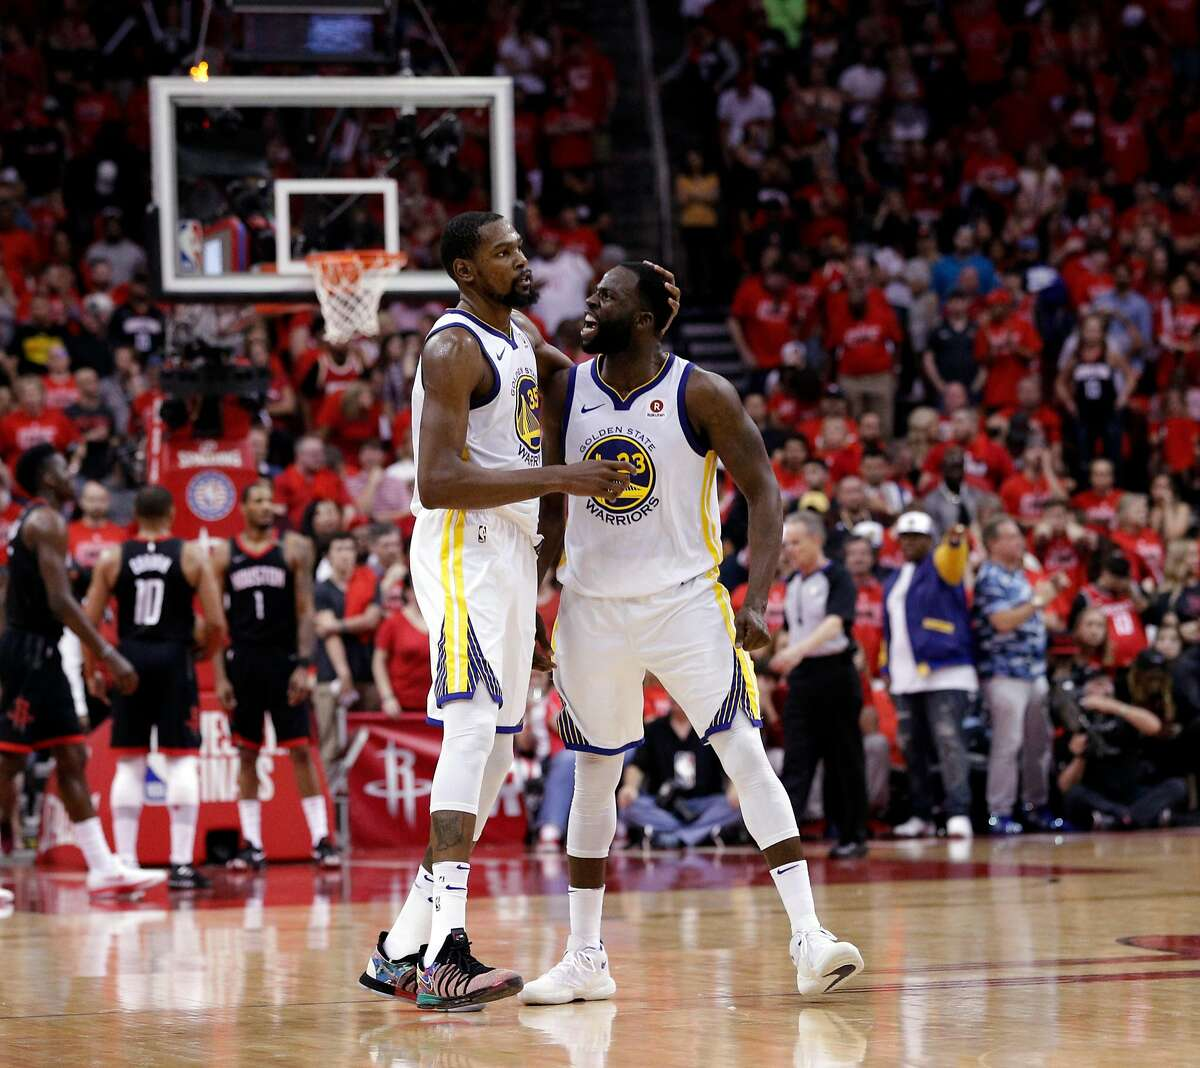 Kevin Durant (35) and Draymond Green (23) celebrate in the final seconds of the fourth quarter as the Golden State Warriors defeated the Houston Rockets in Game 7 of the Western Conference Finals 101-92 to advance to the NBA Finals at the Toyota Center in Houston, Texas, on Monday, May 28, 2018.